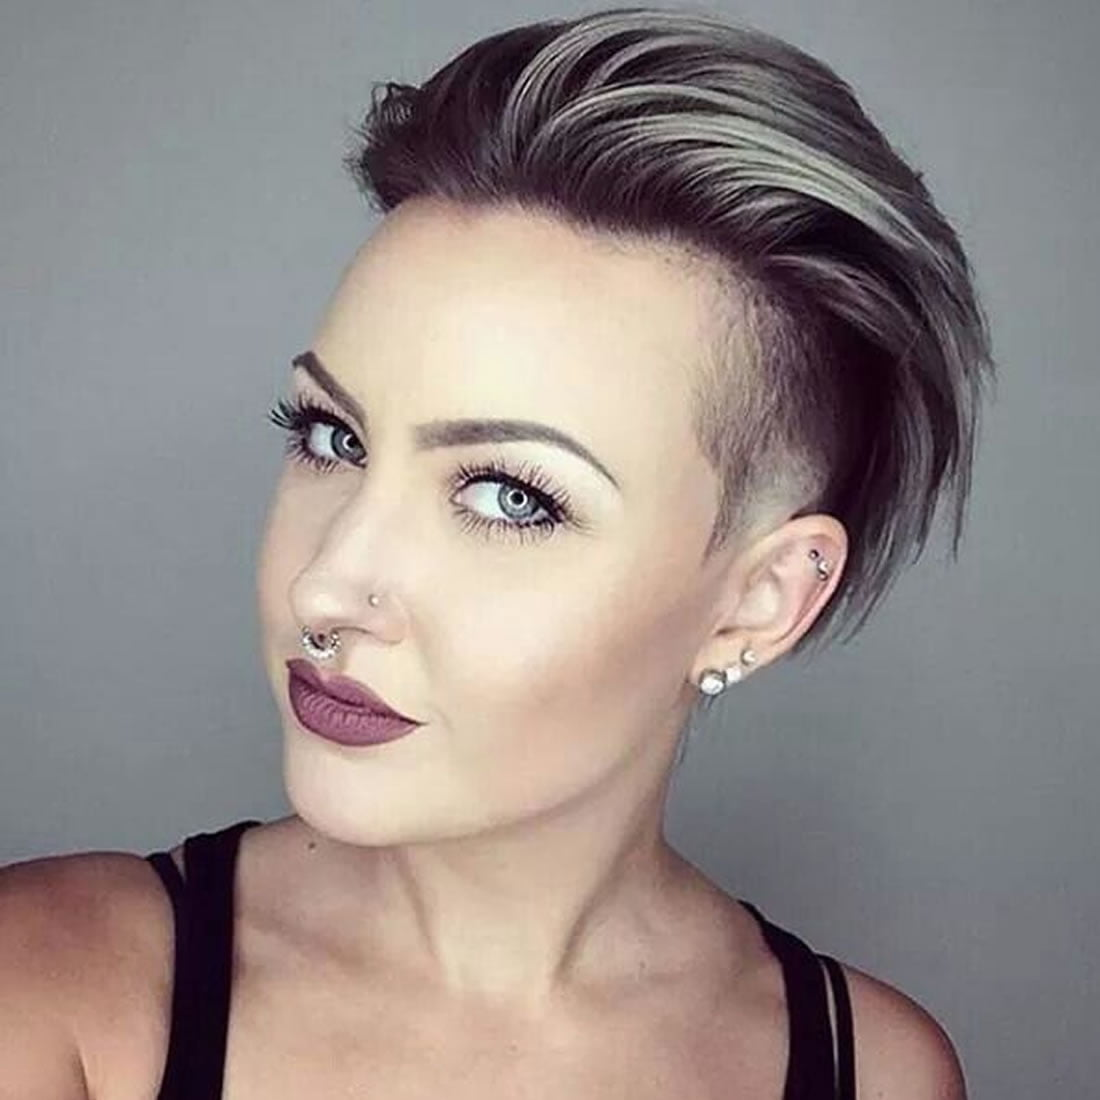 25 Glowing Undercut Short Hairstyles for Women – Page 2 ... - photo#37